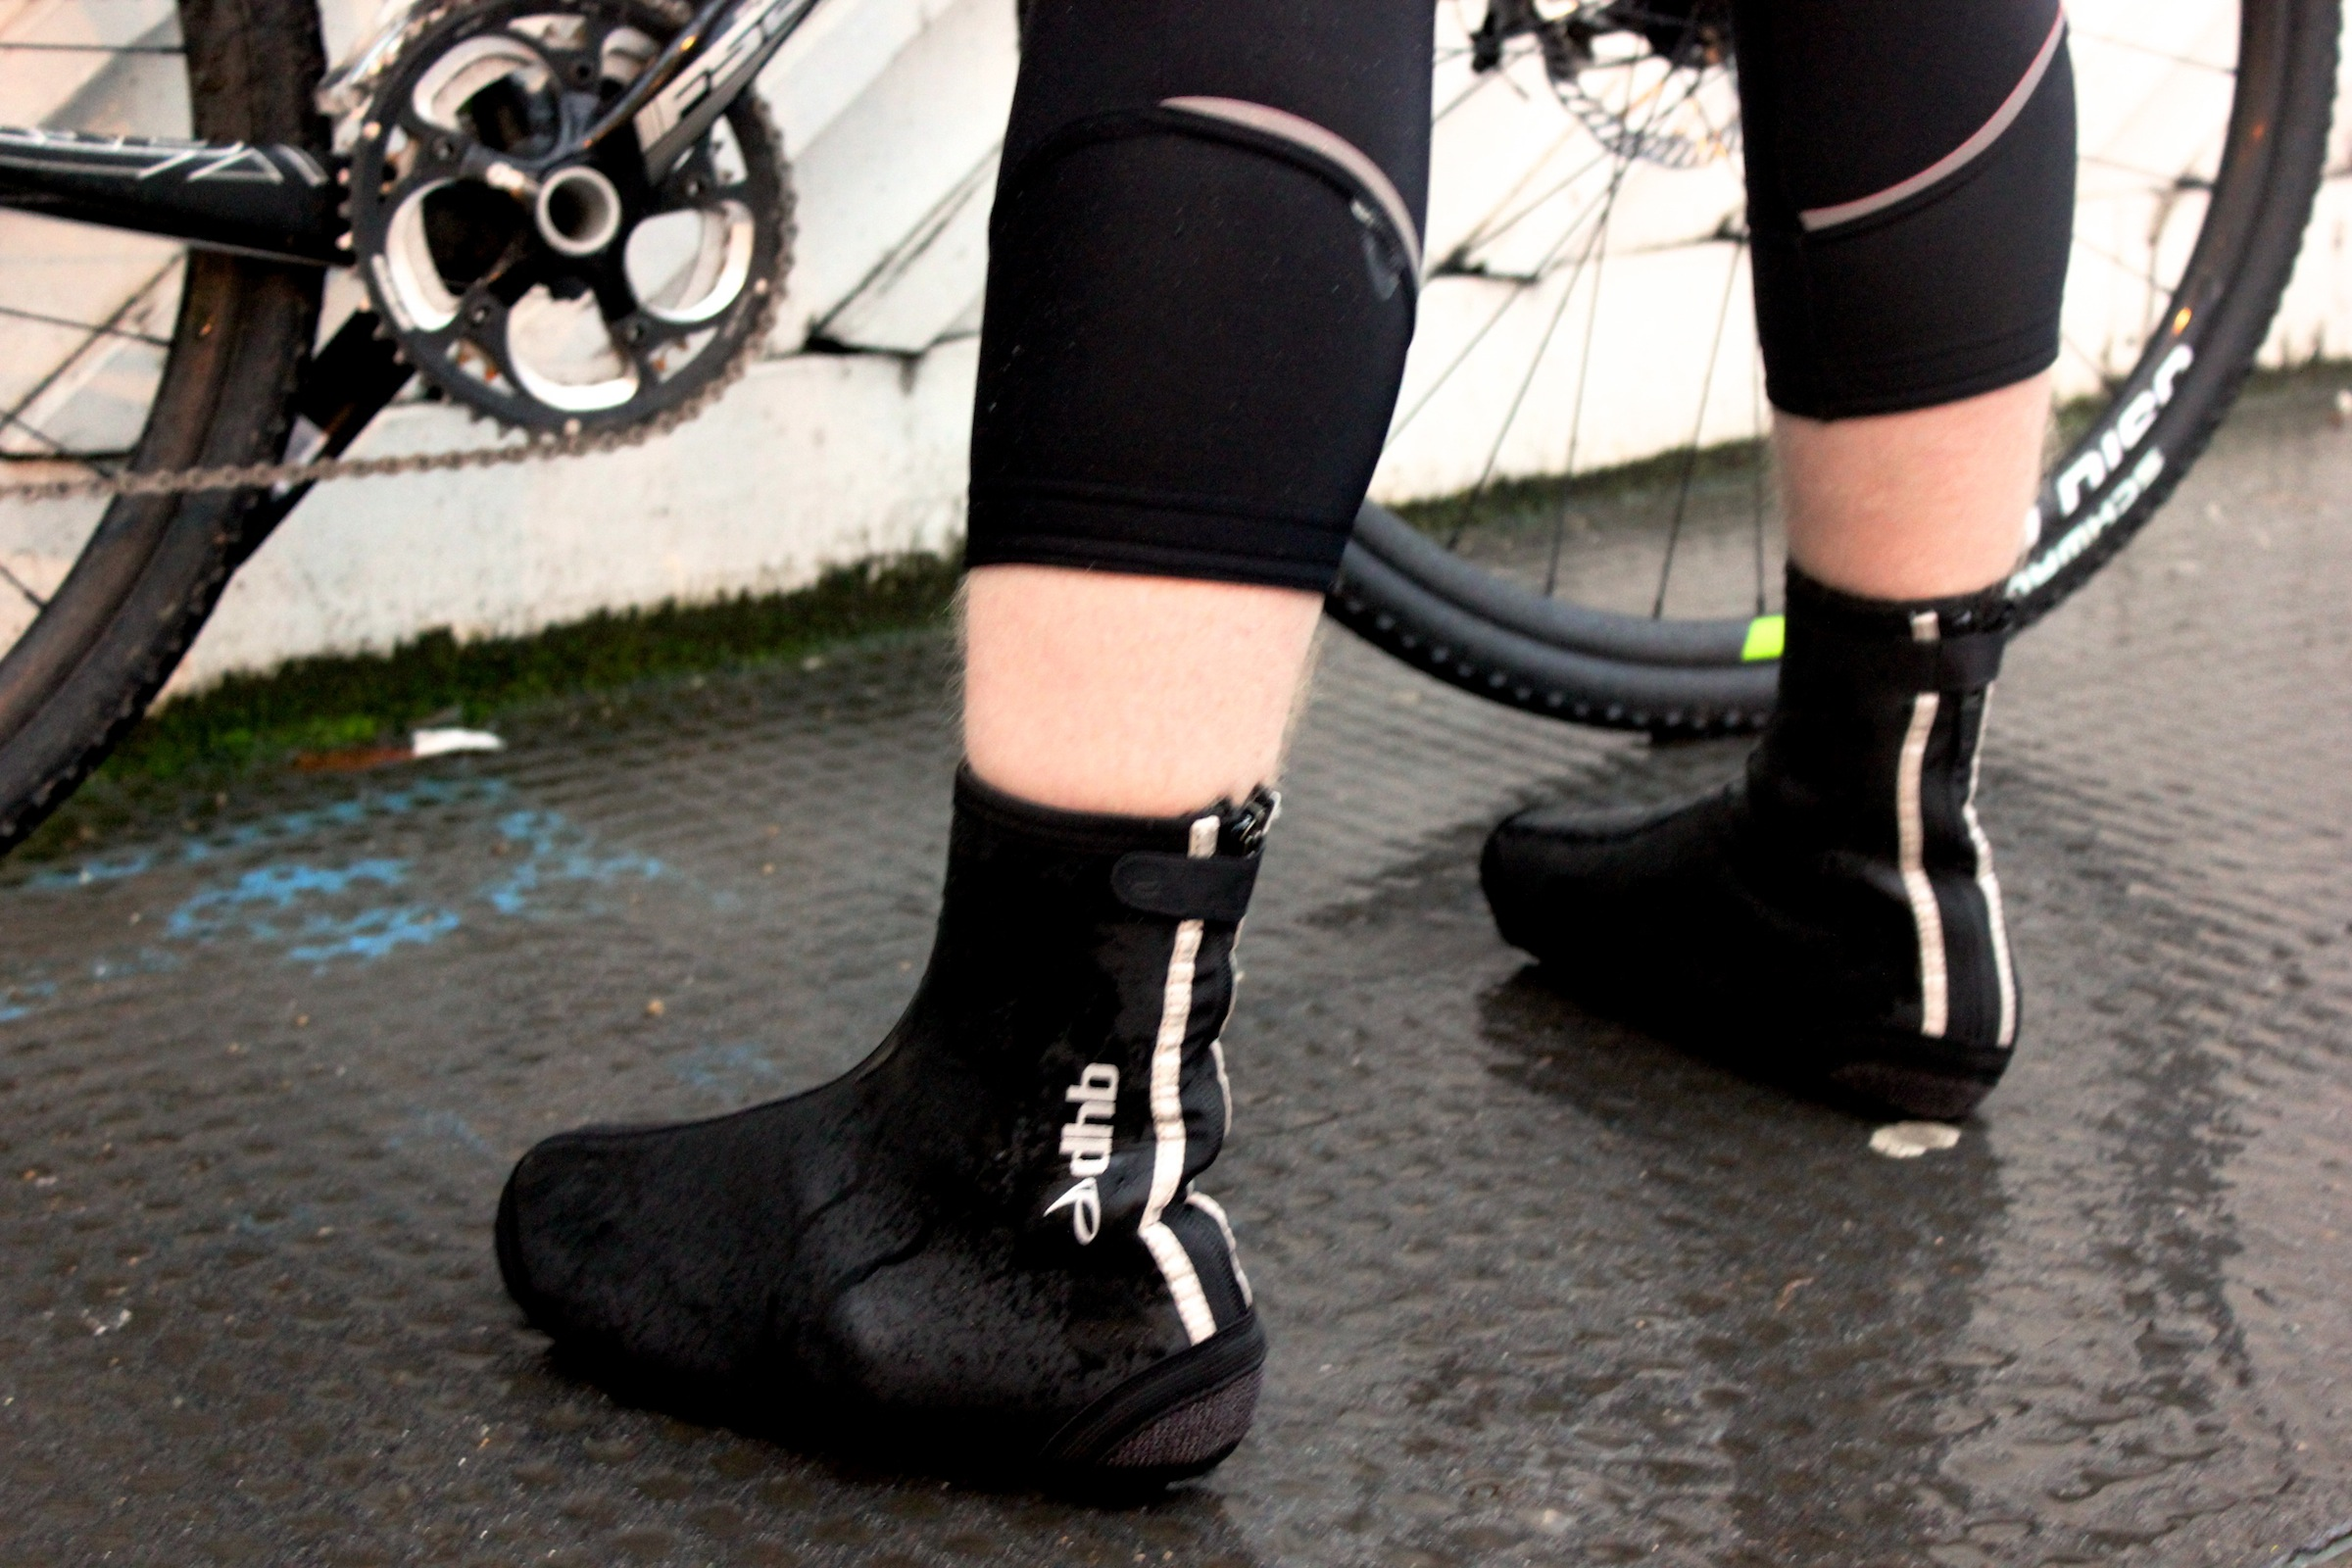 dhb Extreme Weather Neoprene Overshoe, pic: George Scott, ©Factory Media